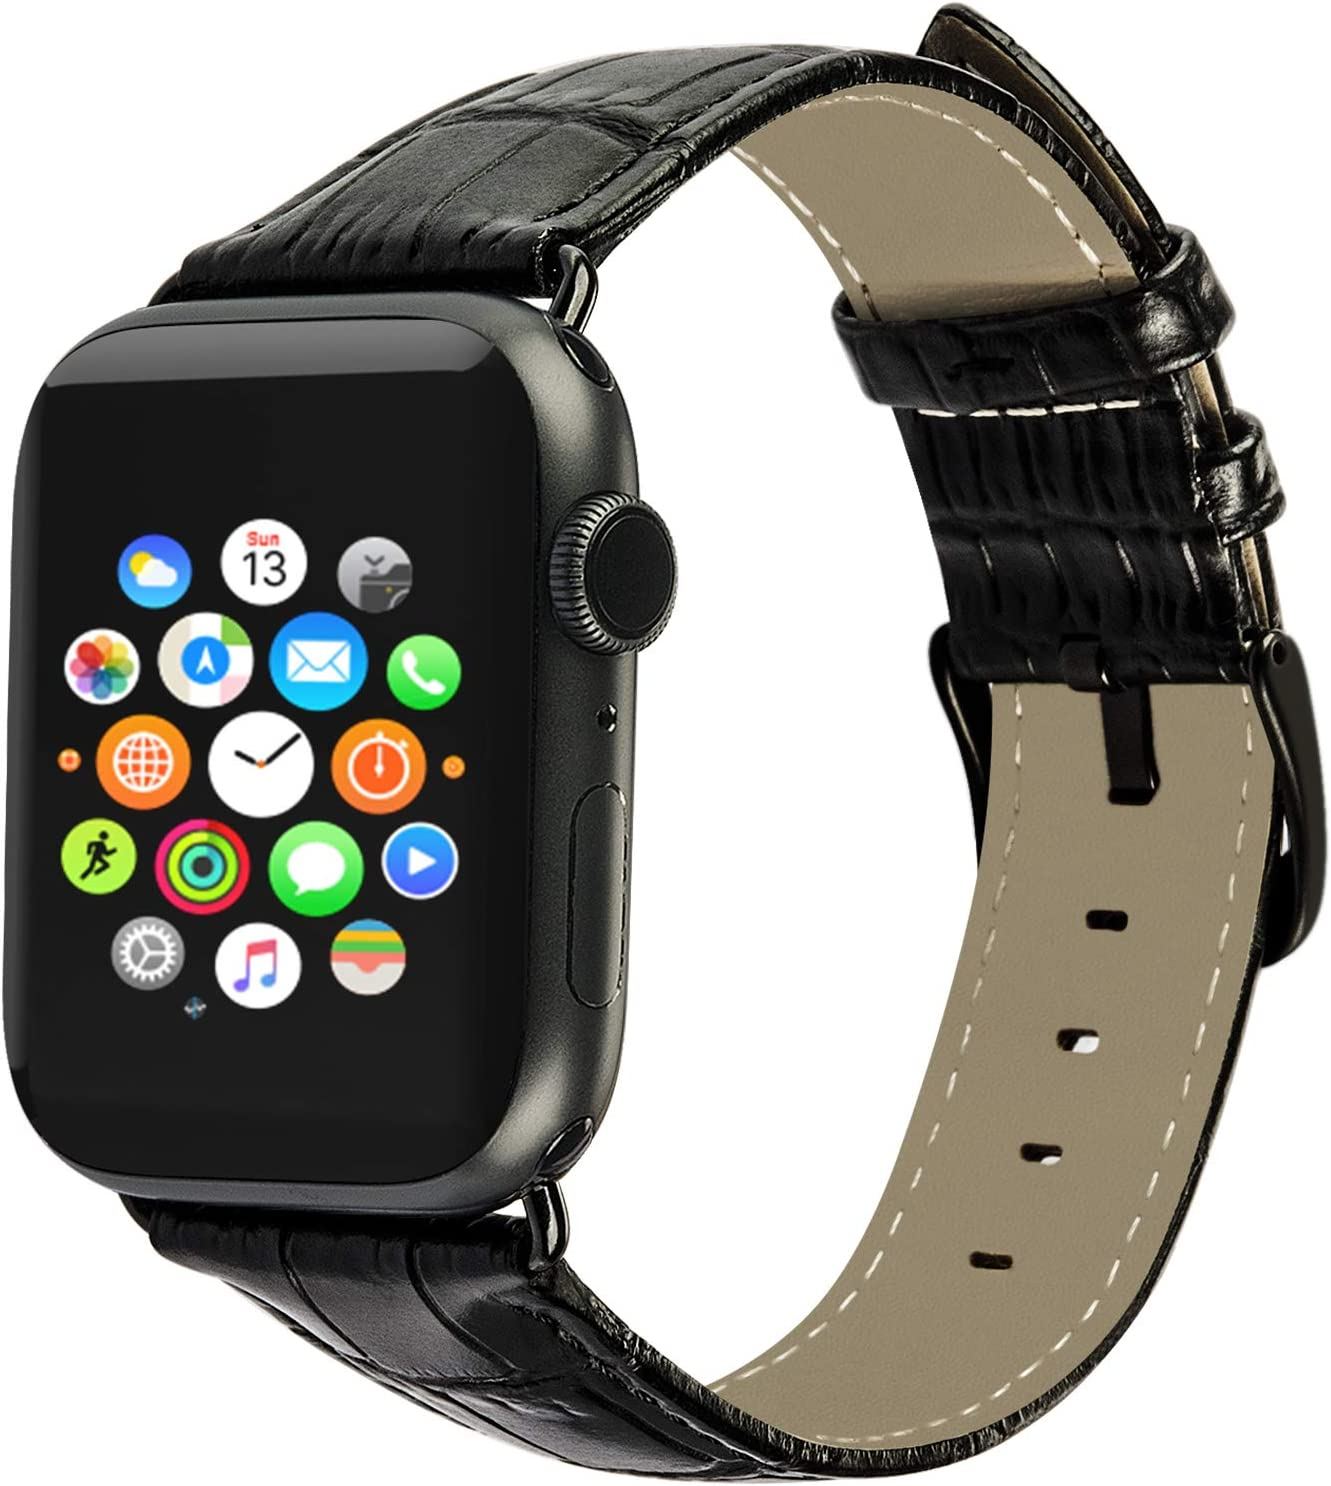 ALADRS Alligator Embossed Leather Watch Strap Compatible with Apple Watch Band 42mm 44mm, Crocodile Grain Wristband Replacement for iWatch Series 6 5 4, SE (44mm) Series 3 2 1 (42mm), Black